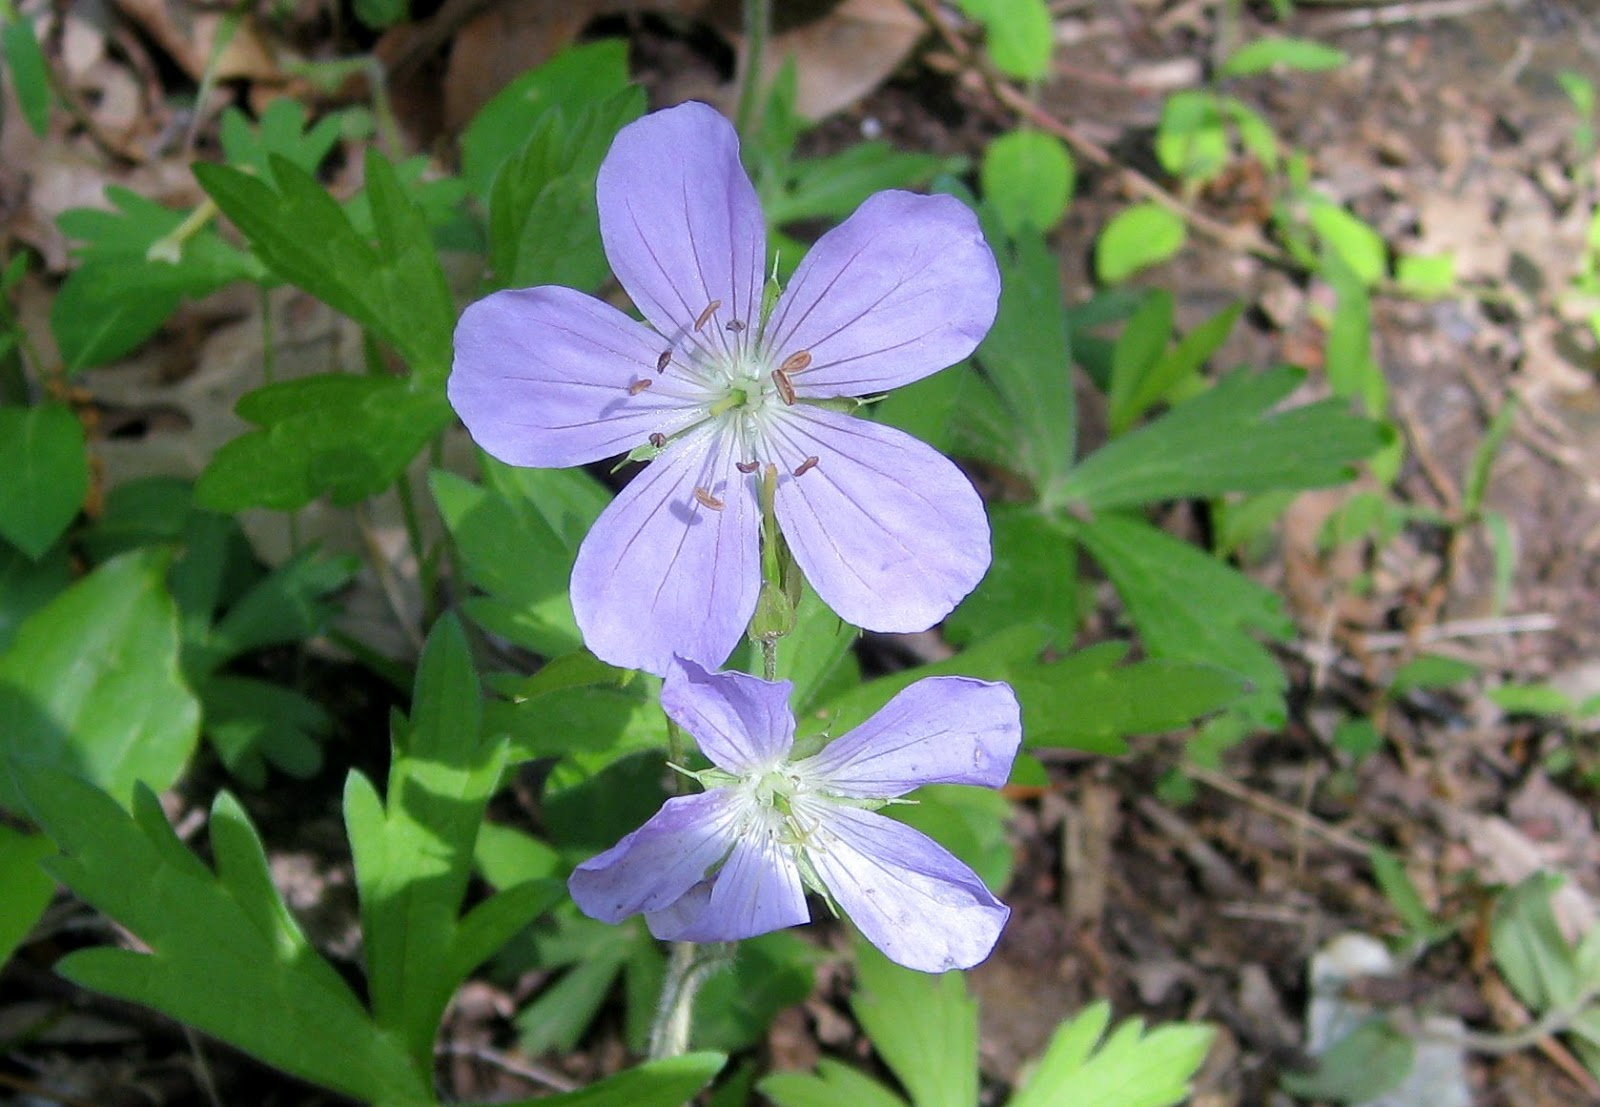 Image of wild geranium by K. R. Smith - may be used with attribution